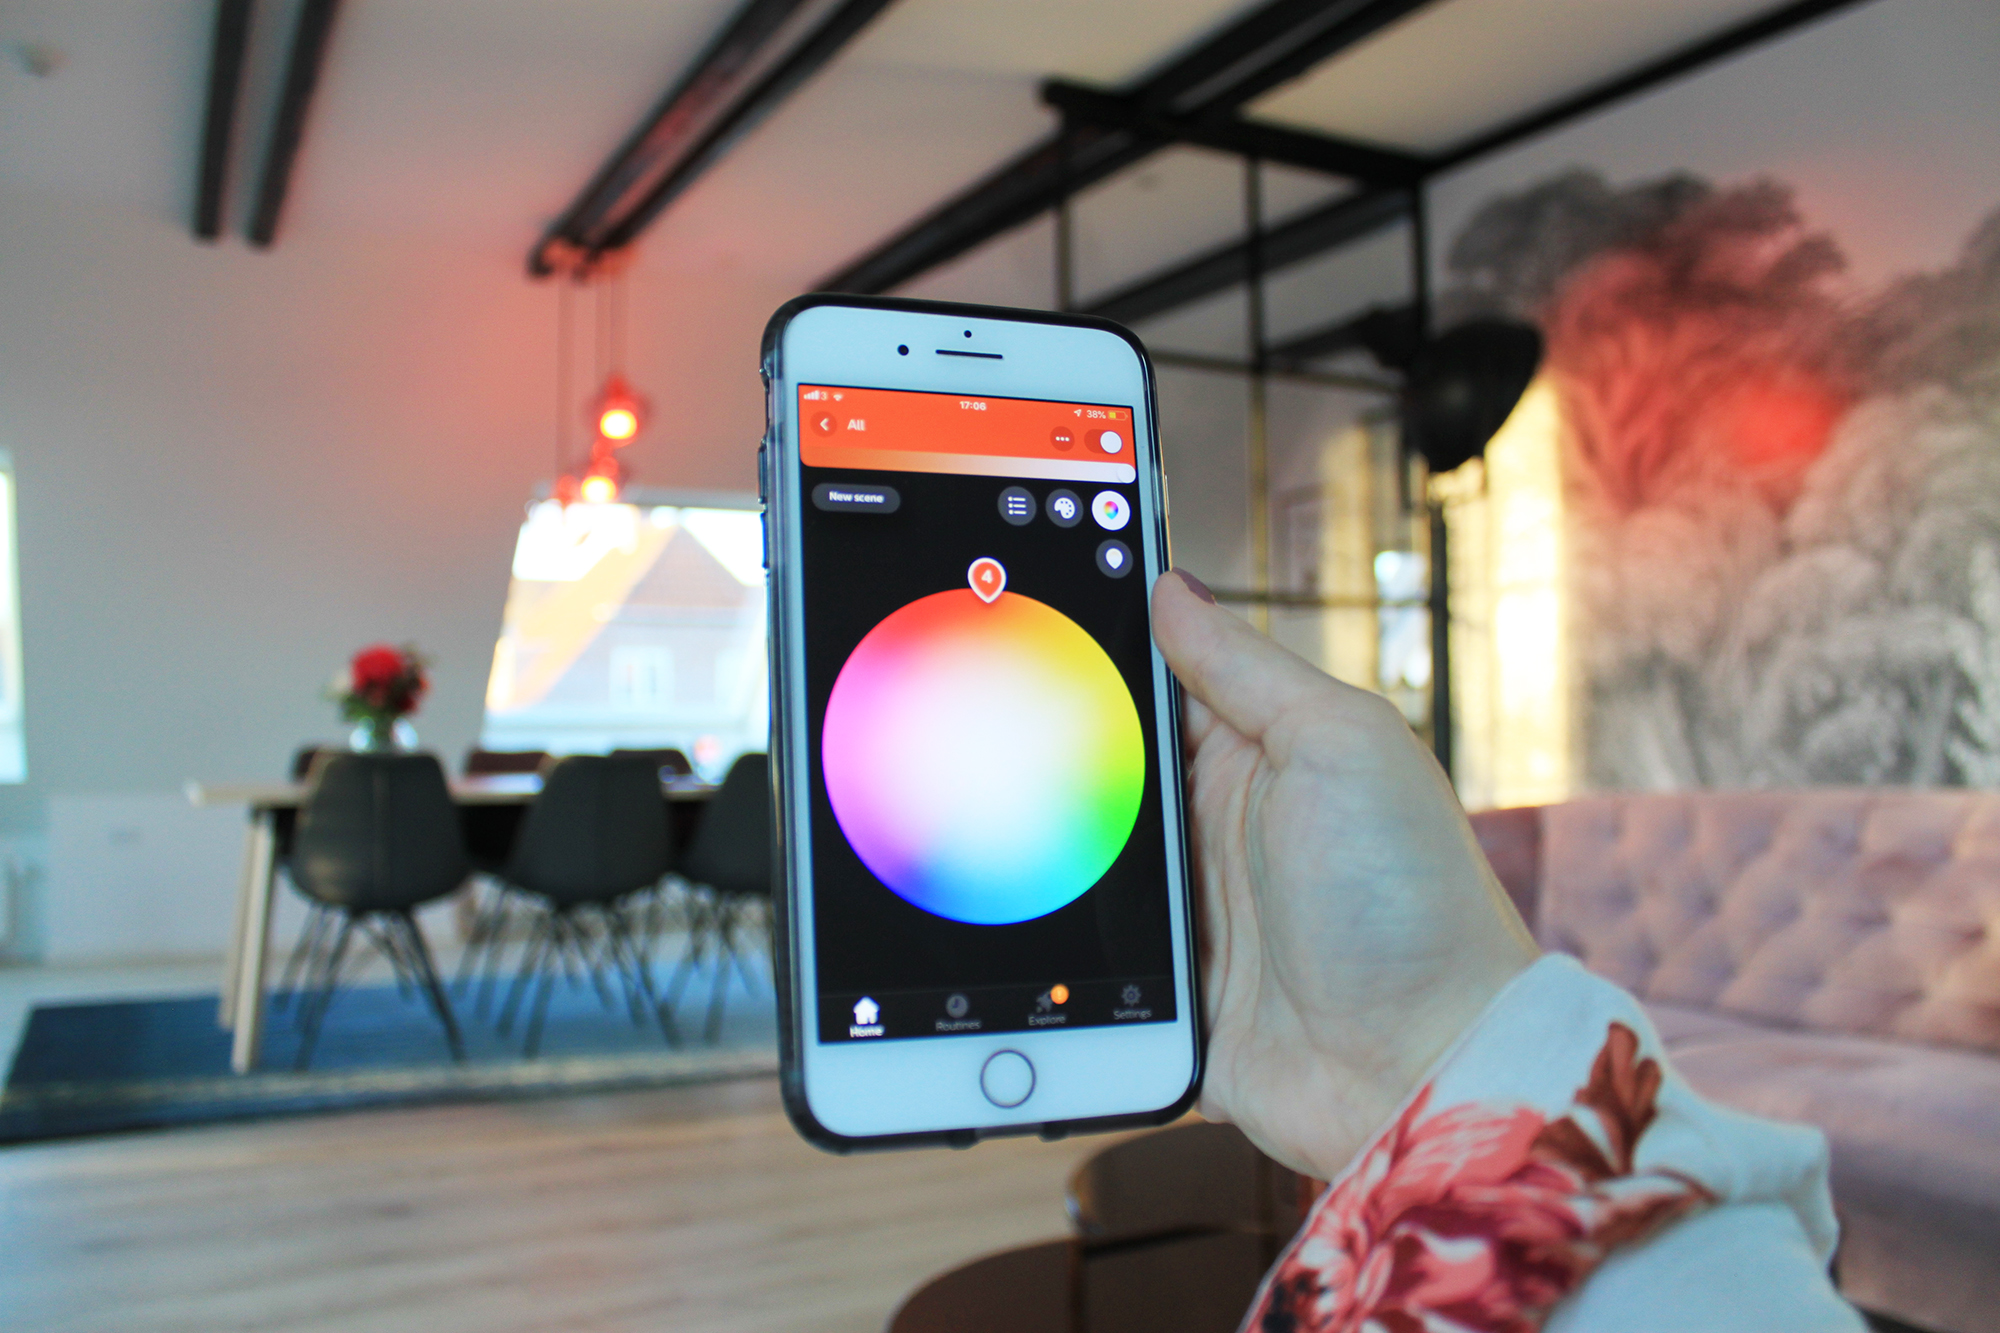 Philips Hue lights smart home